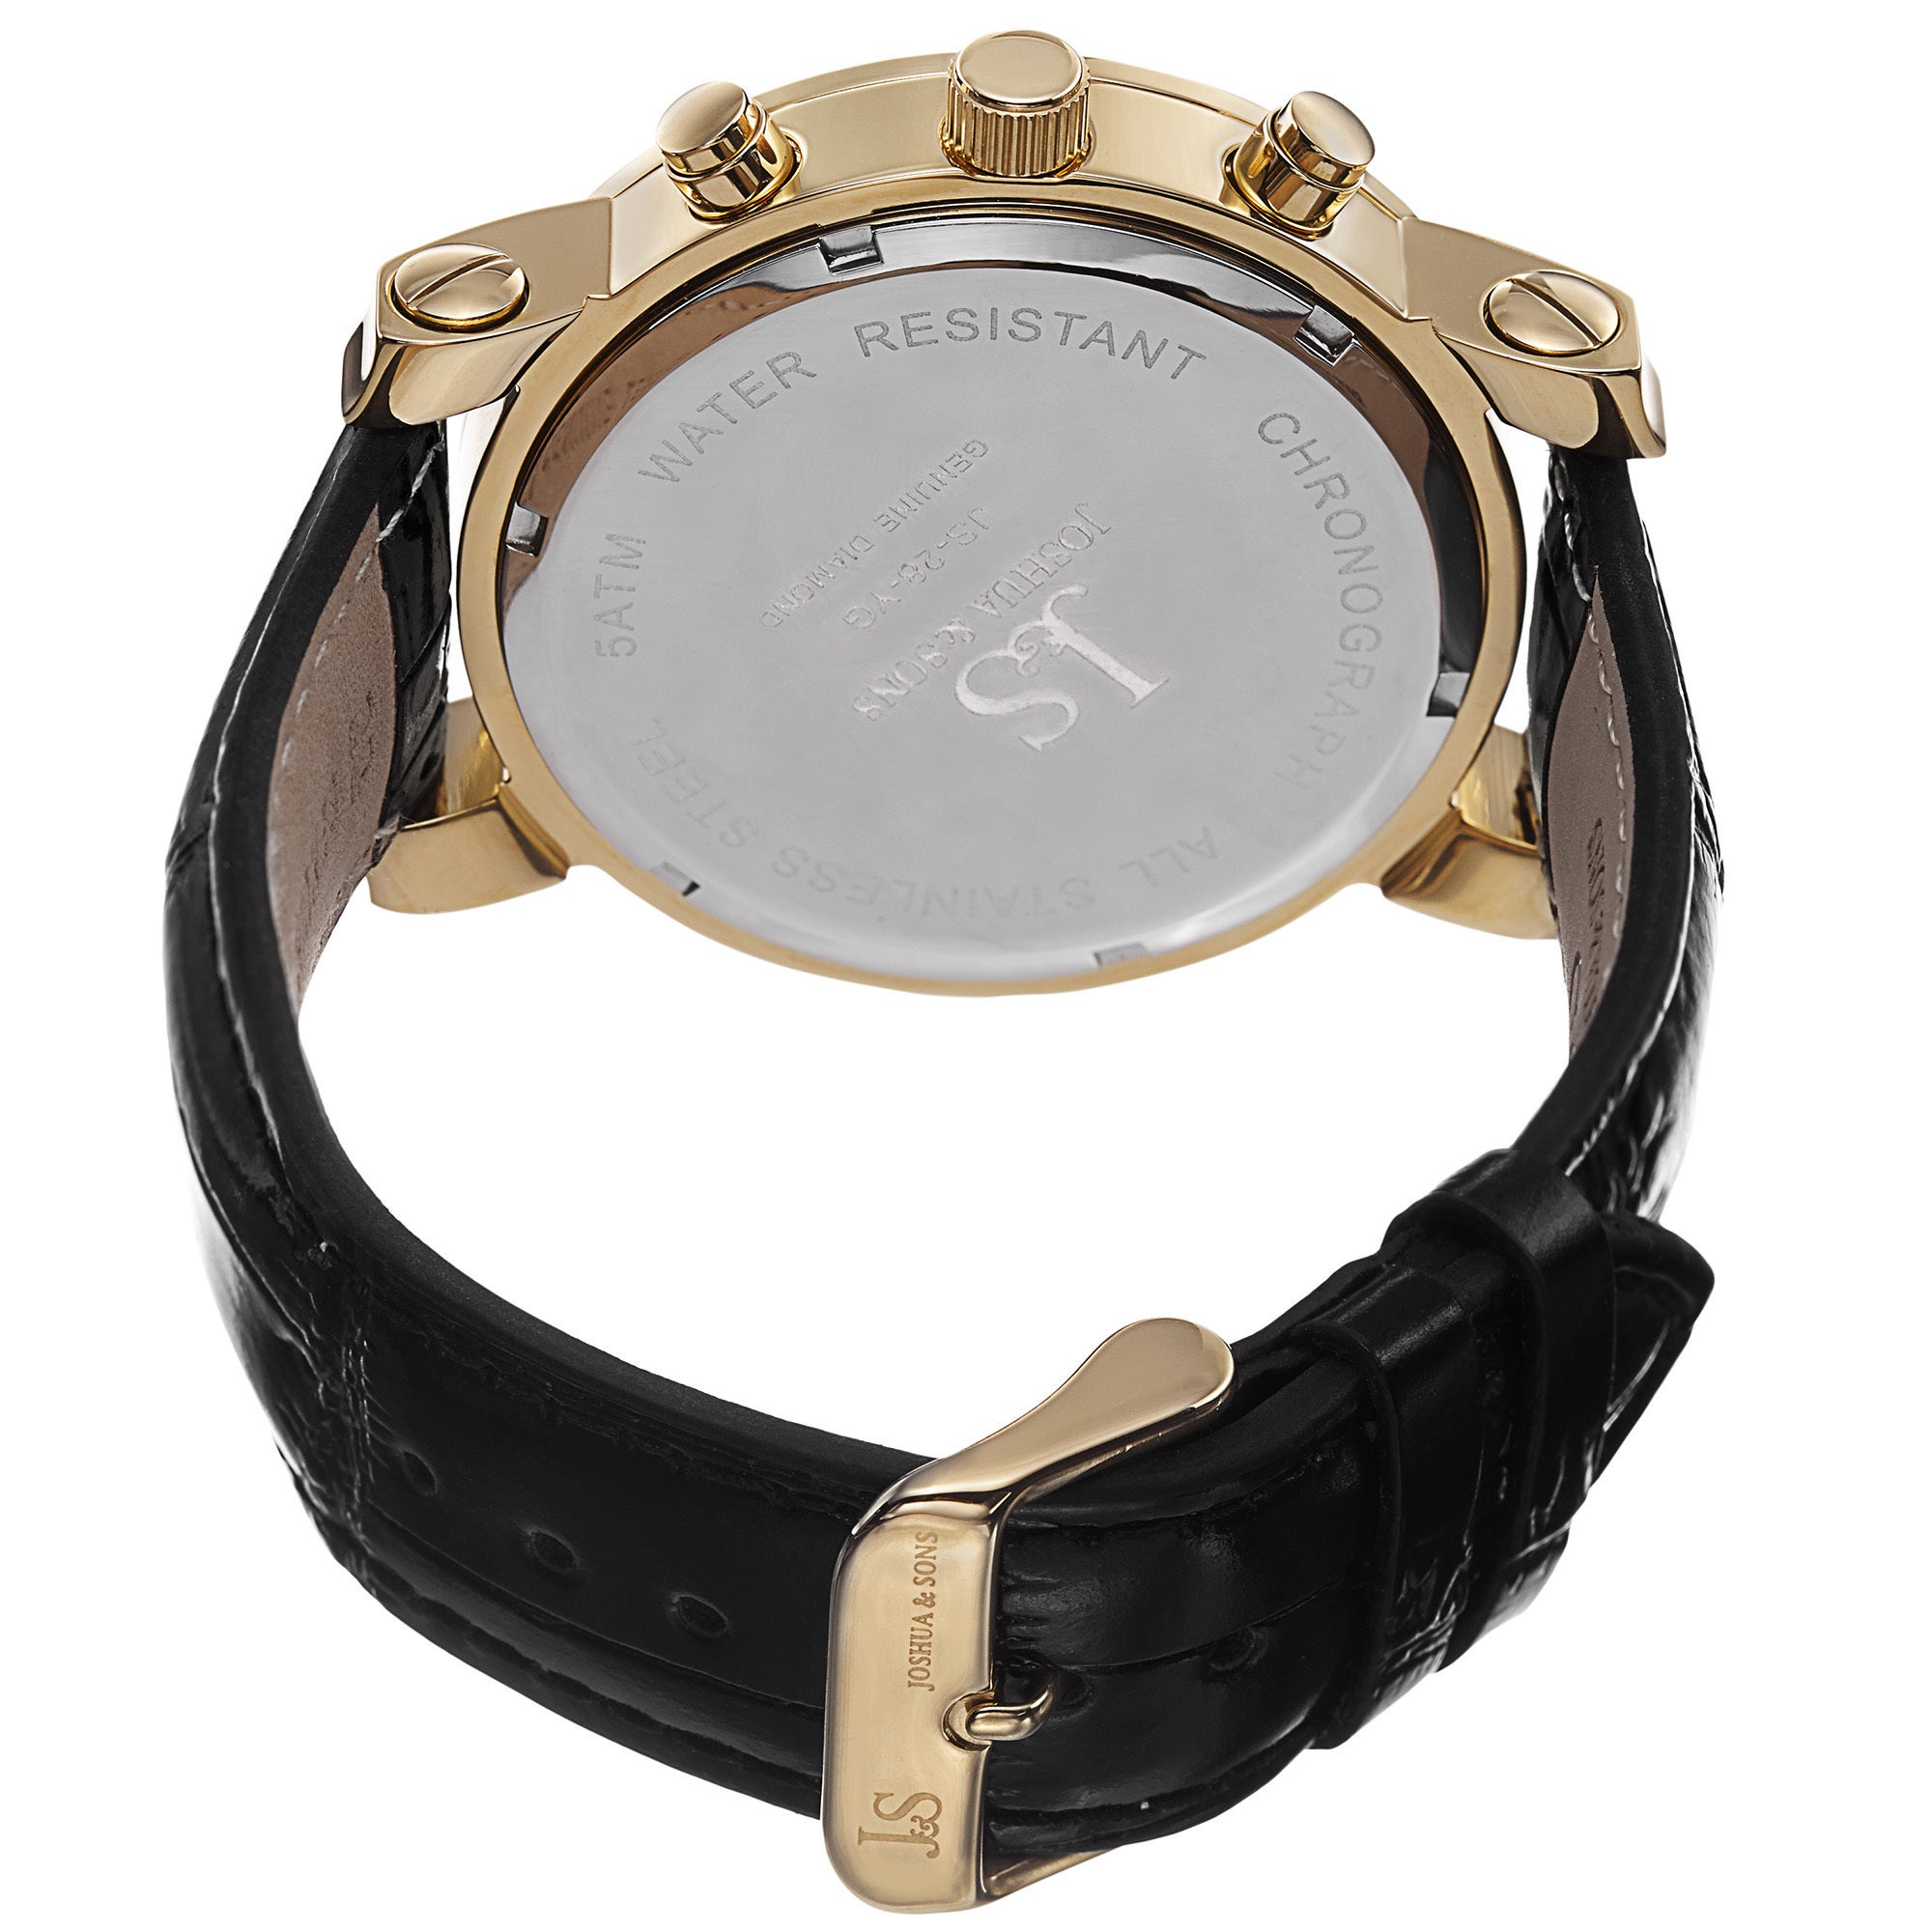 fc6397303 Shop Joshua & Sons Men's Diamond Chronograph Leather Black Strap Watch -  Gold - Free Shipping Today - Overstock - 10305533